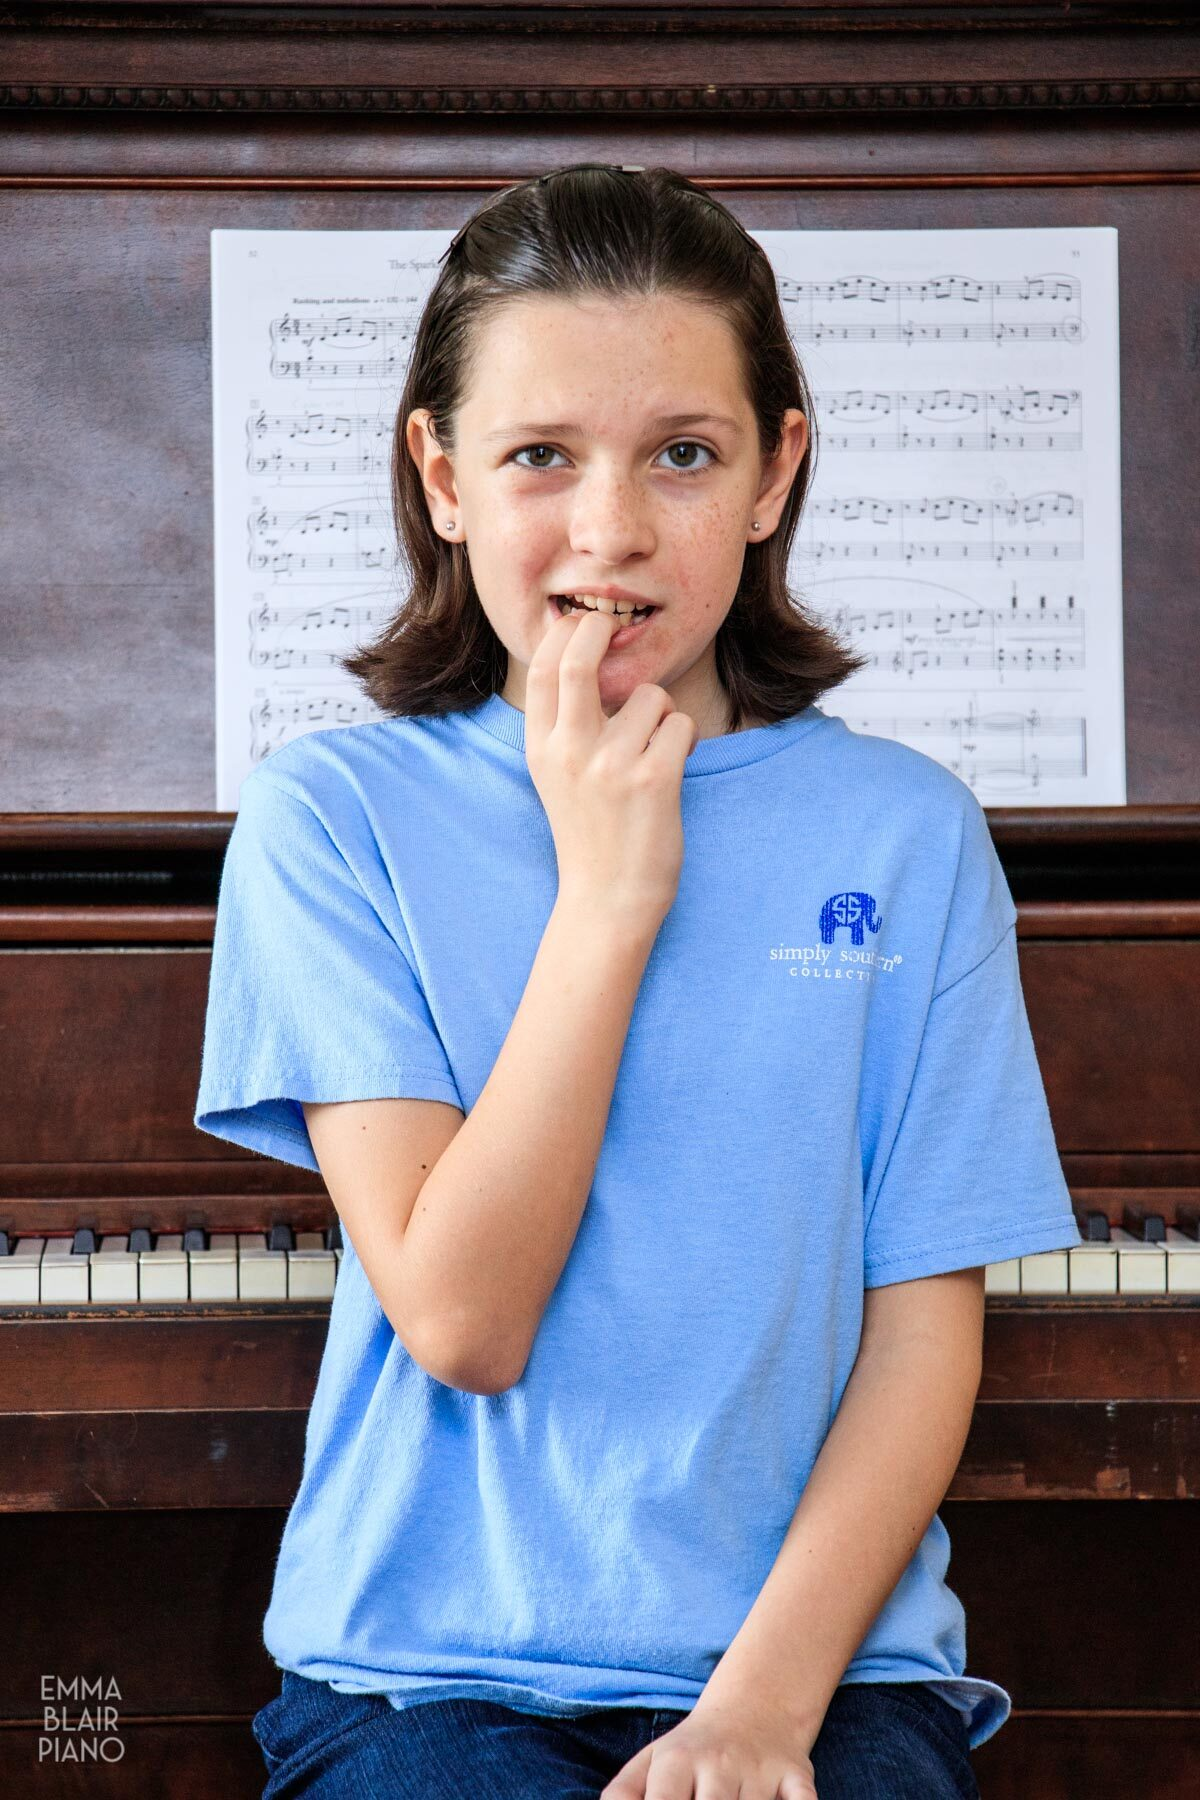 young girl sitting at the piano looking nervous